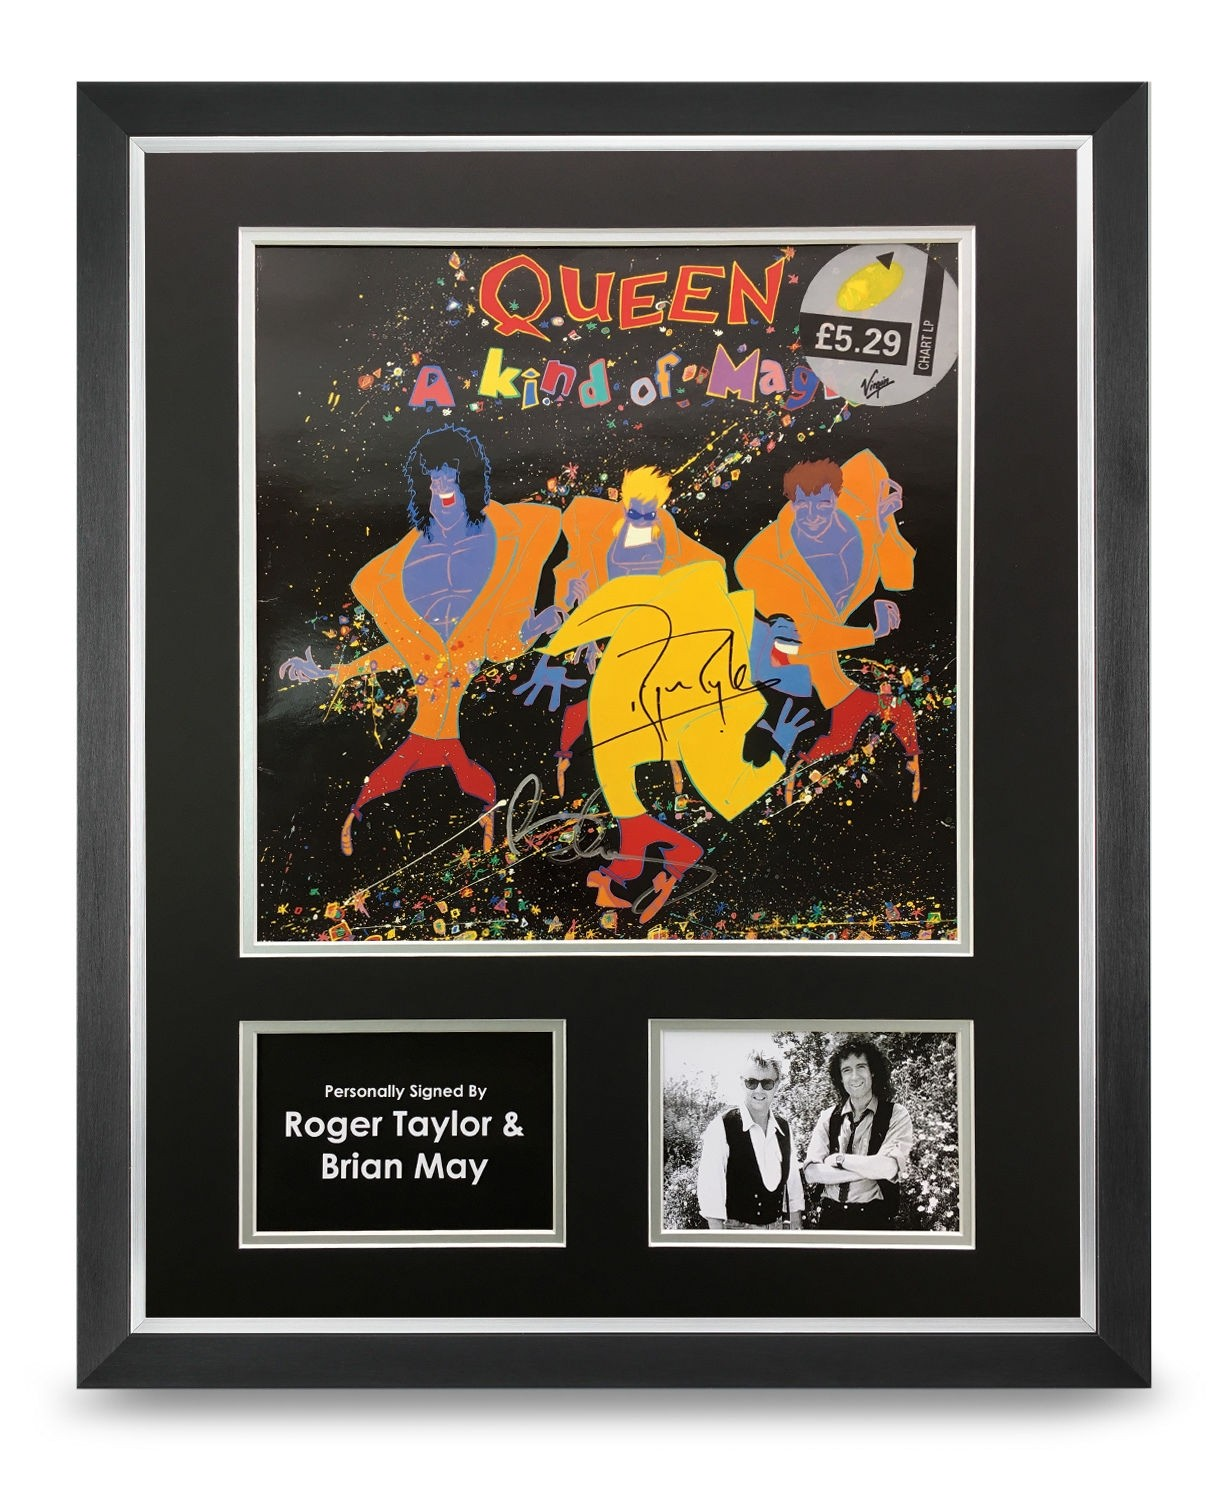 Queen Signed Album